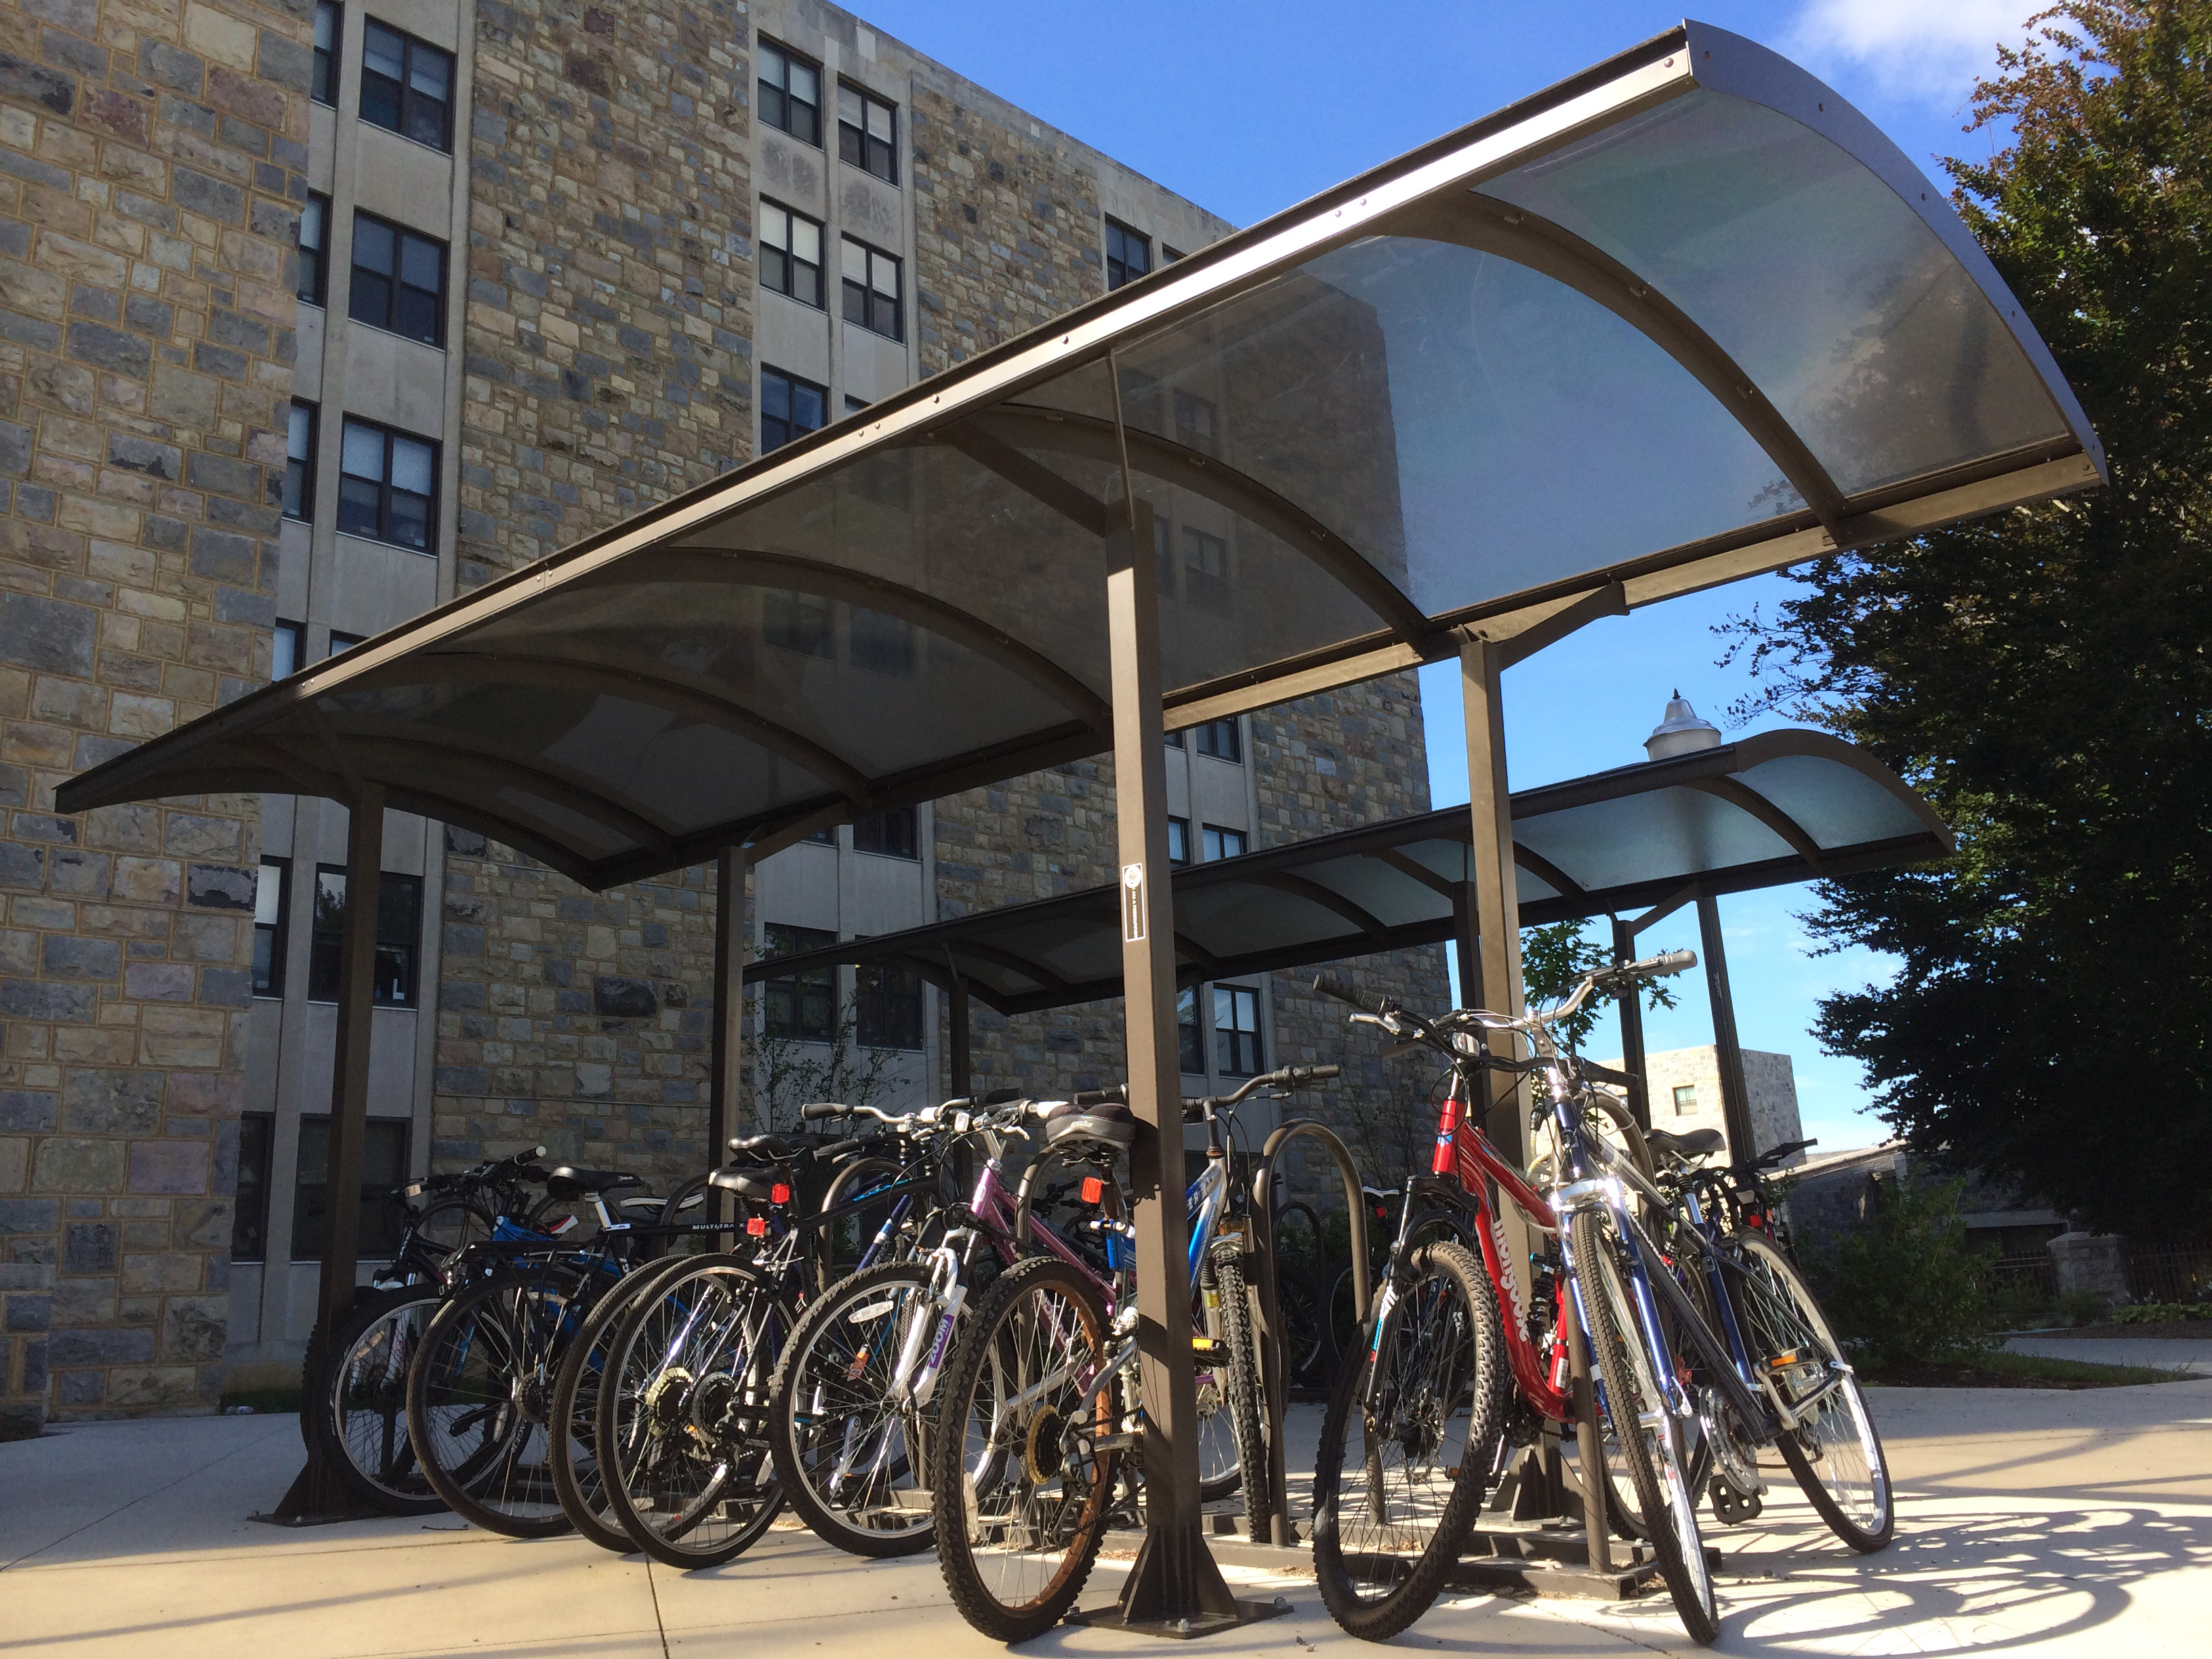 Garage Journal Bike Storage University Boosts Bicycle Parking On Campus Virginia Tech Daily